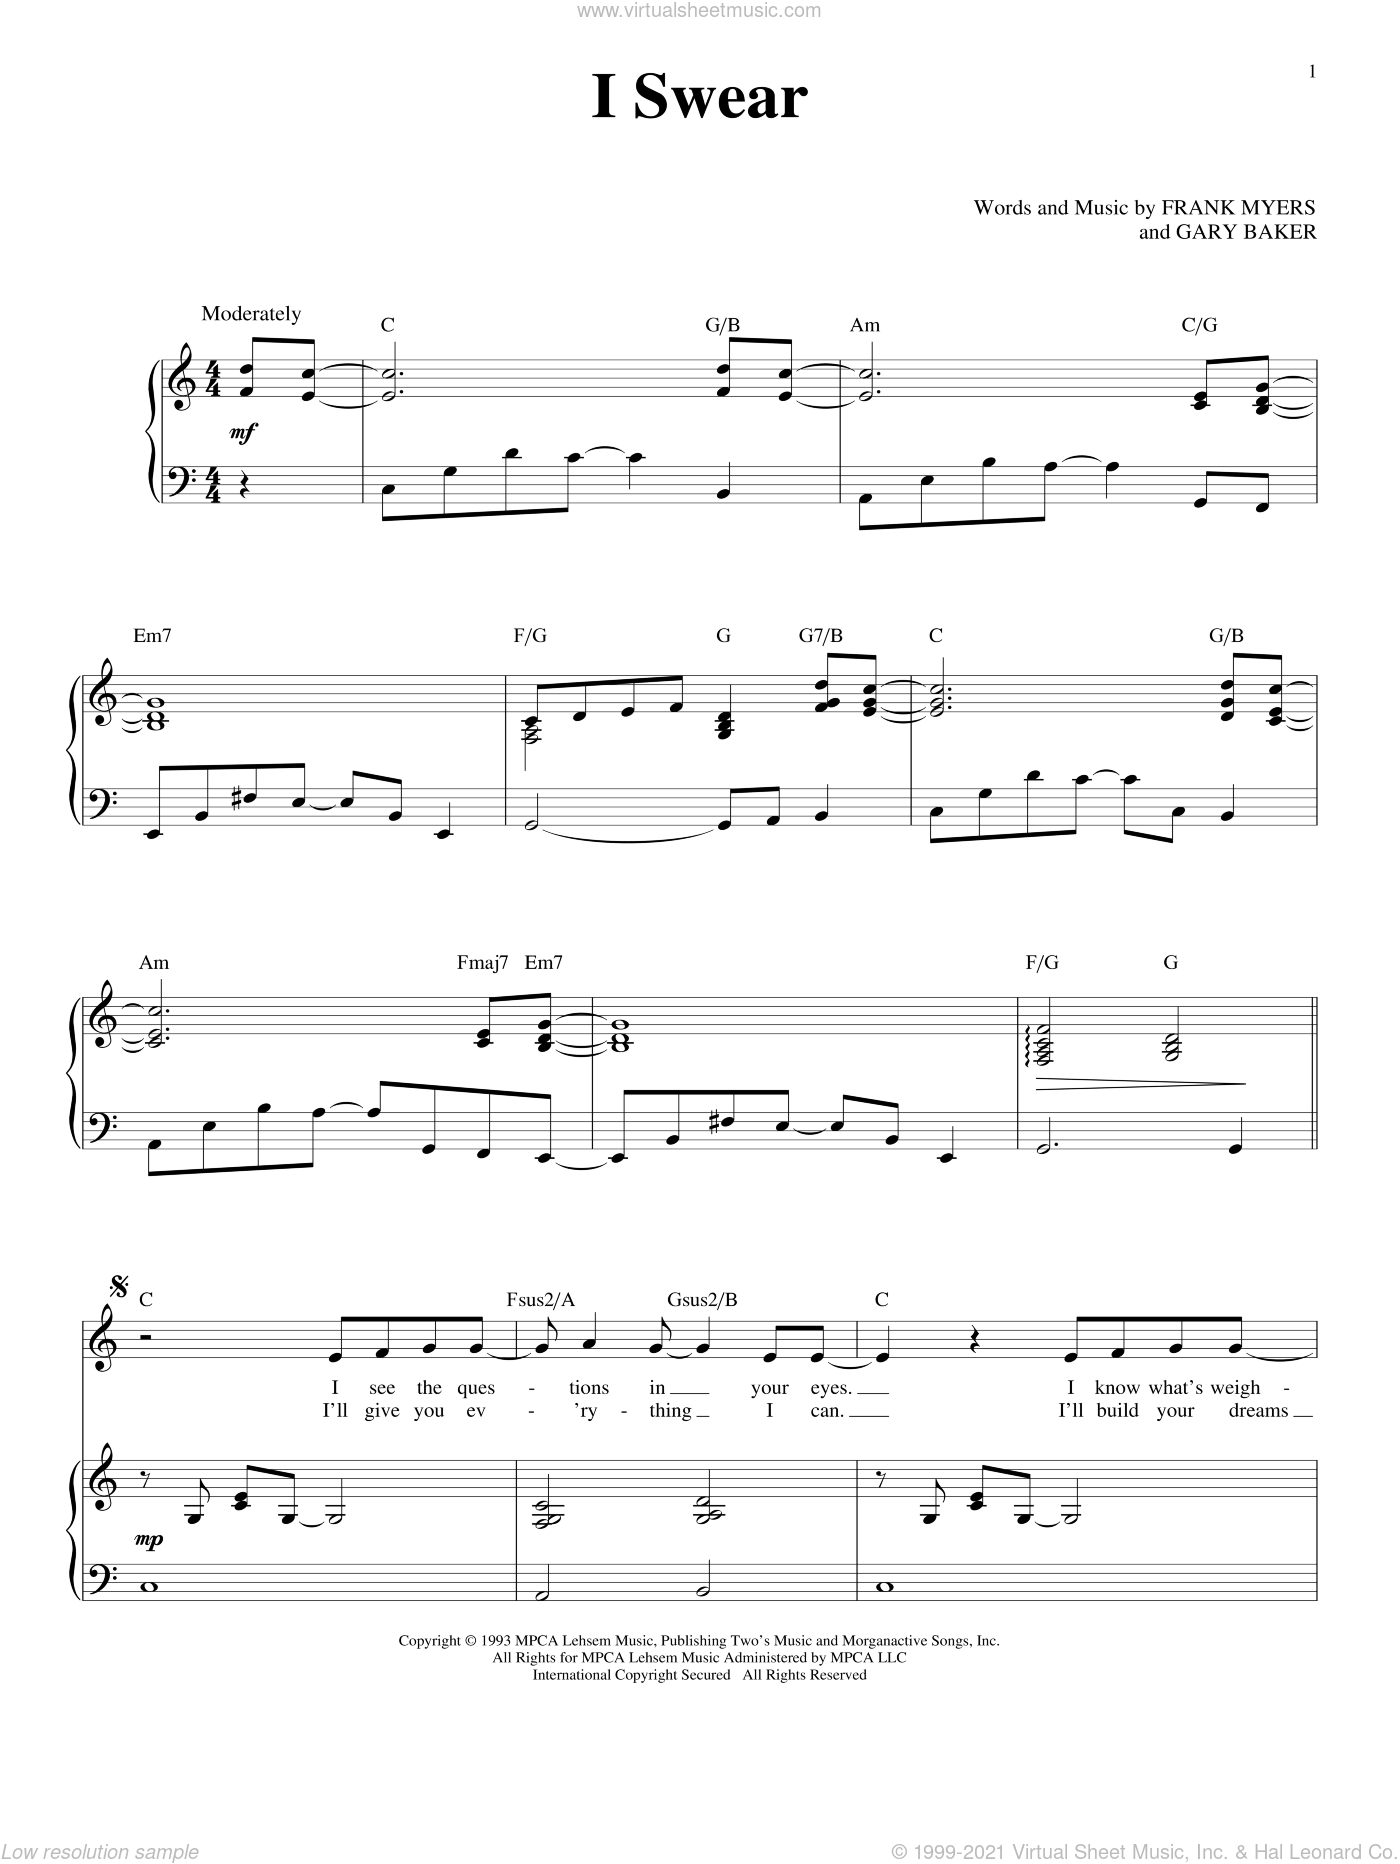 I Swear sheet music for voice and piano by Gary Baker